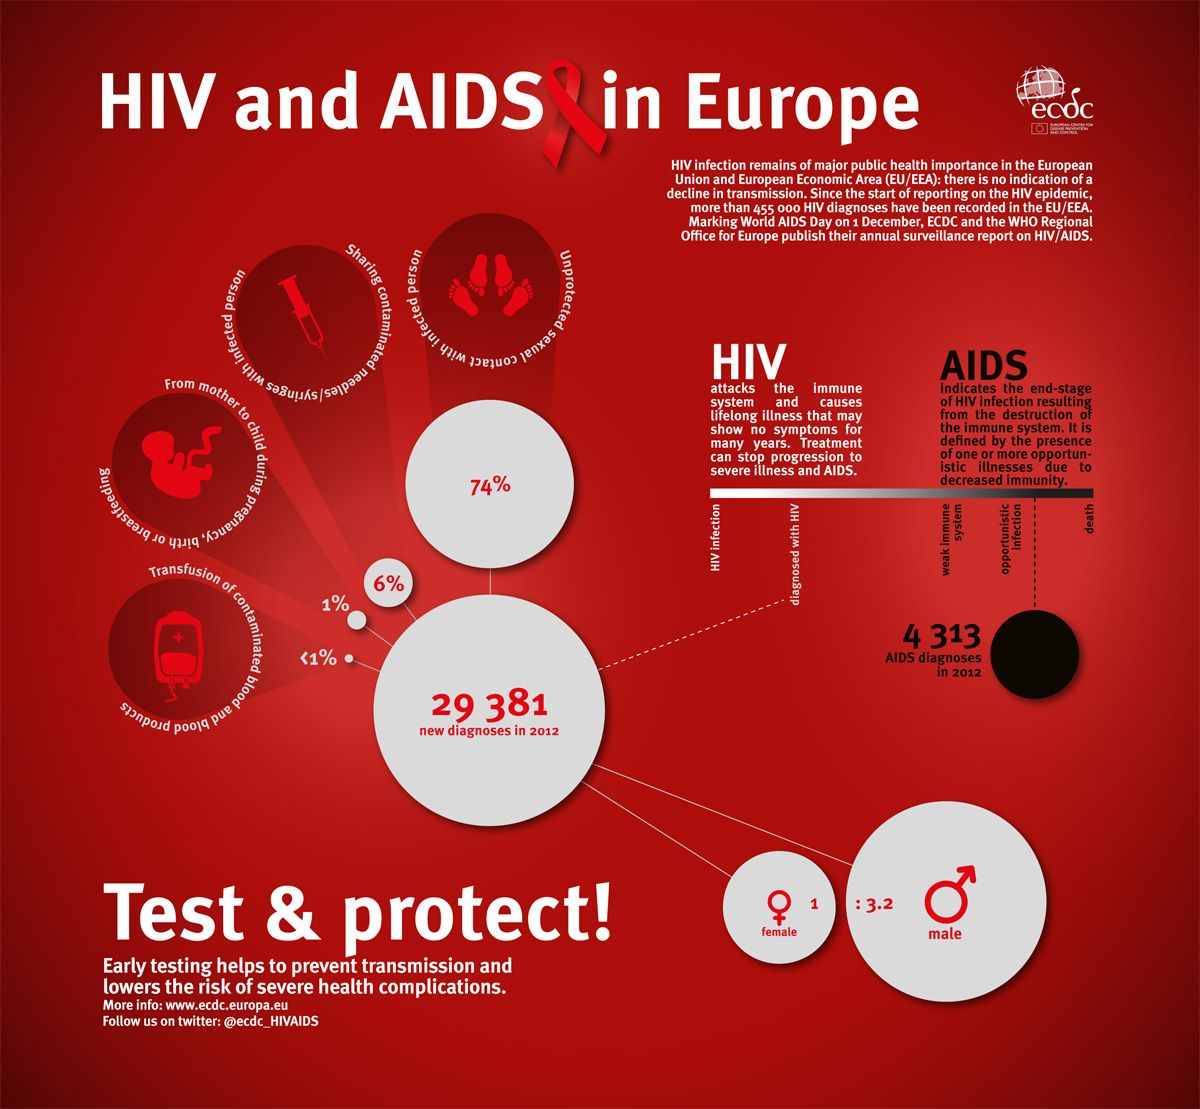 hiv aids in human services Us department of health and human services contact us | en español offering information on hiv/aids  where the guidelines might have said hiv-infected person.